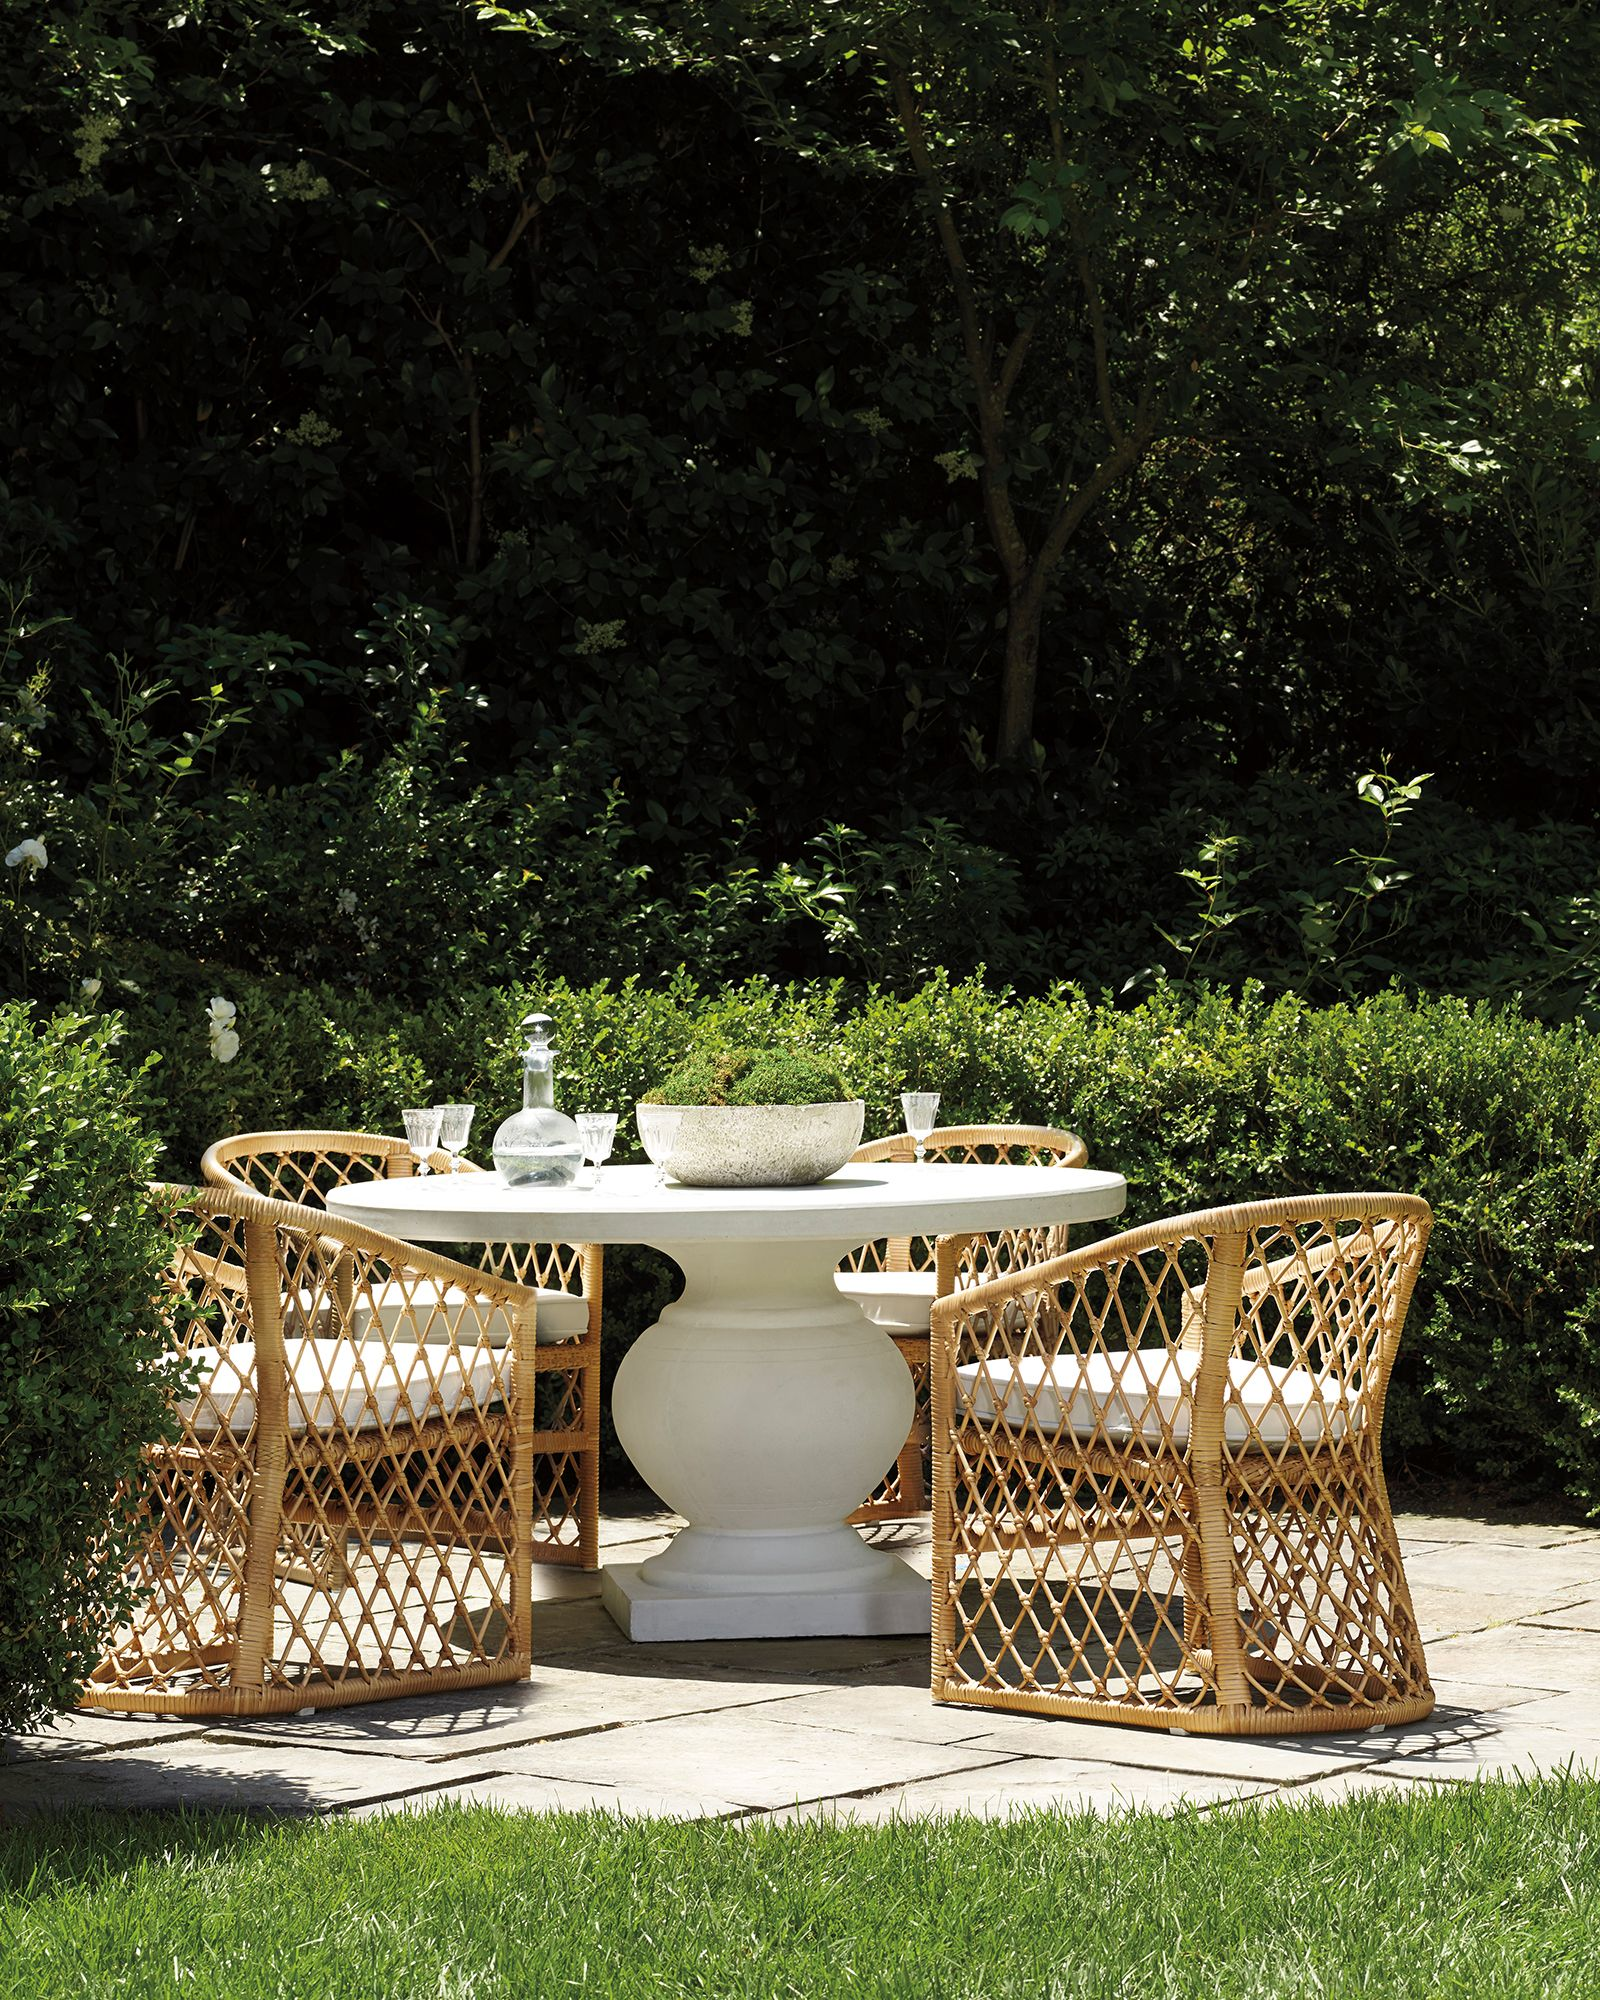 Terrace Round Dining Table Outdoor Dining Chairs Outdoor Dining Table Used Outdoor Furniture